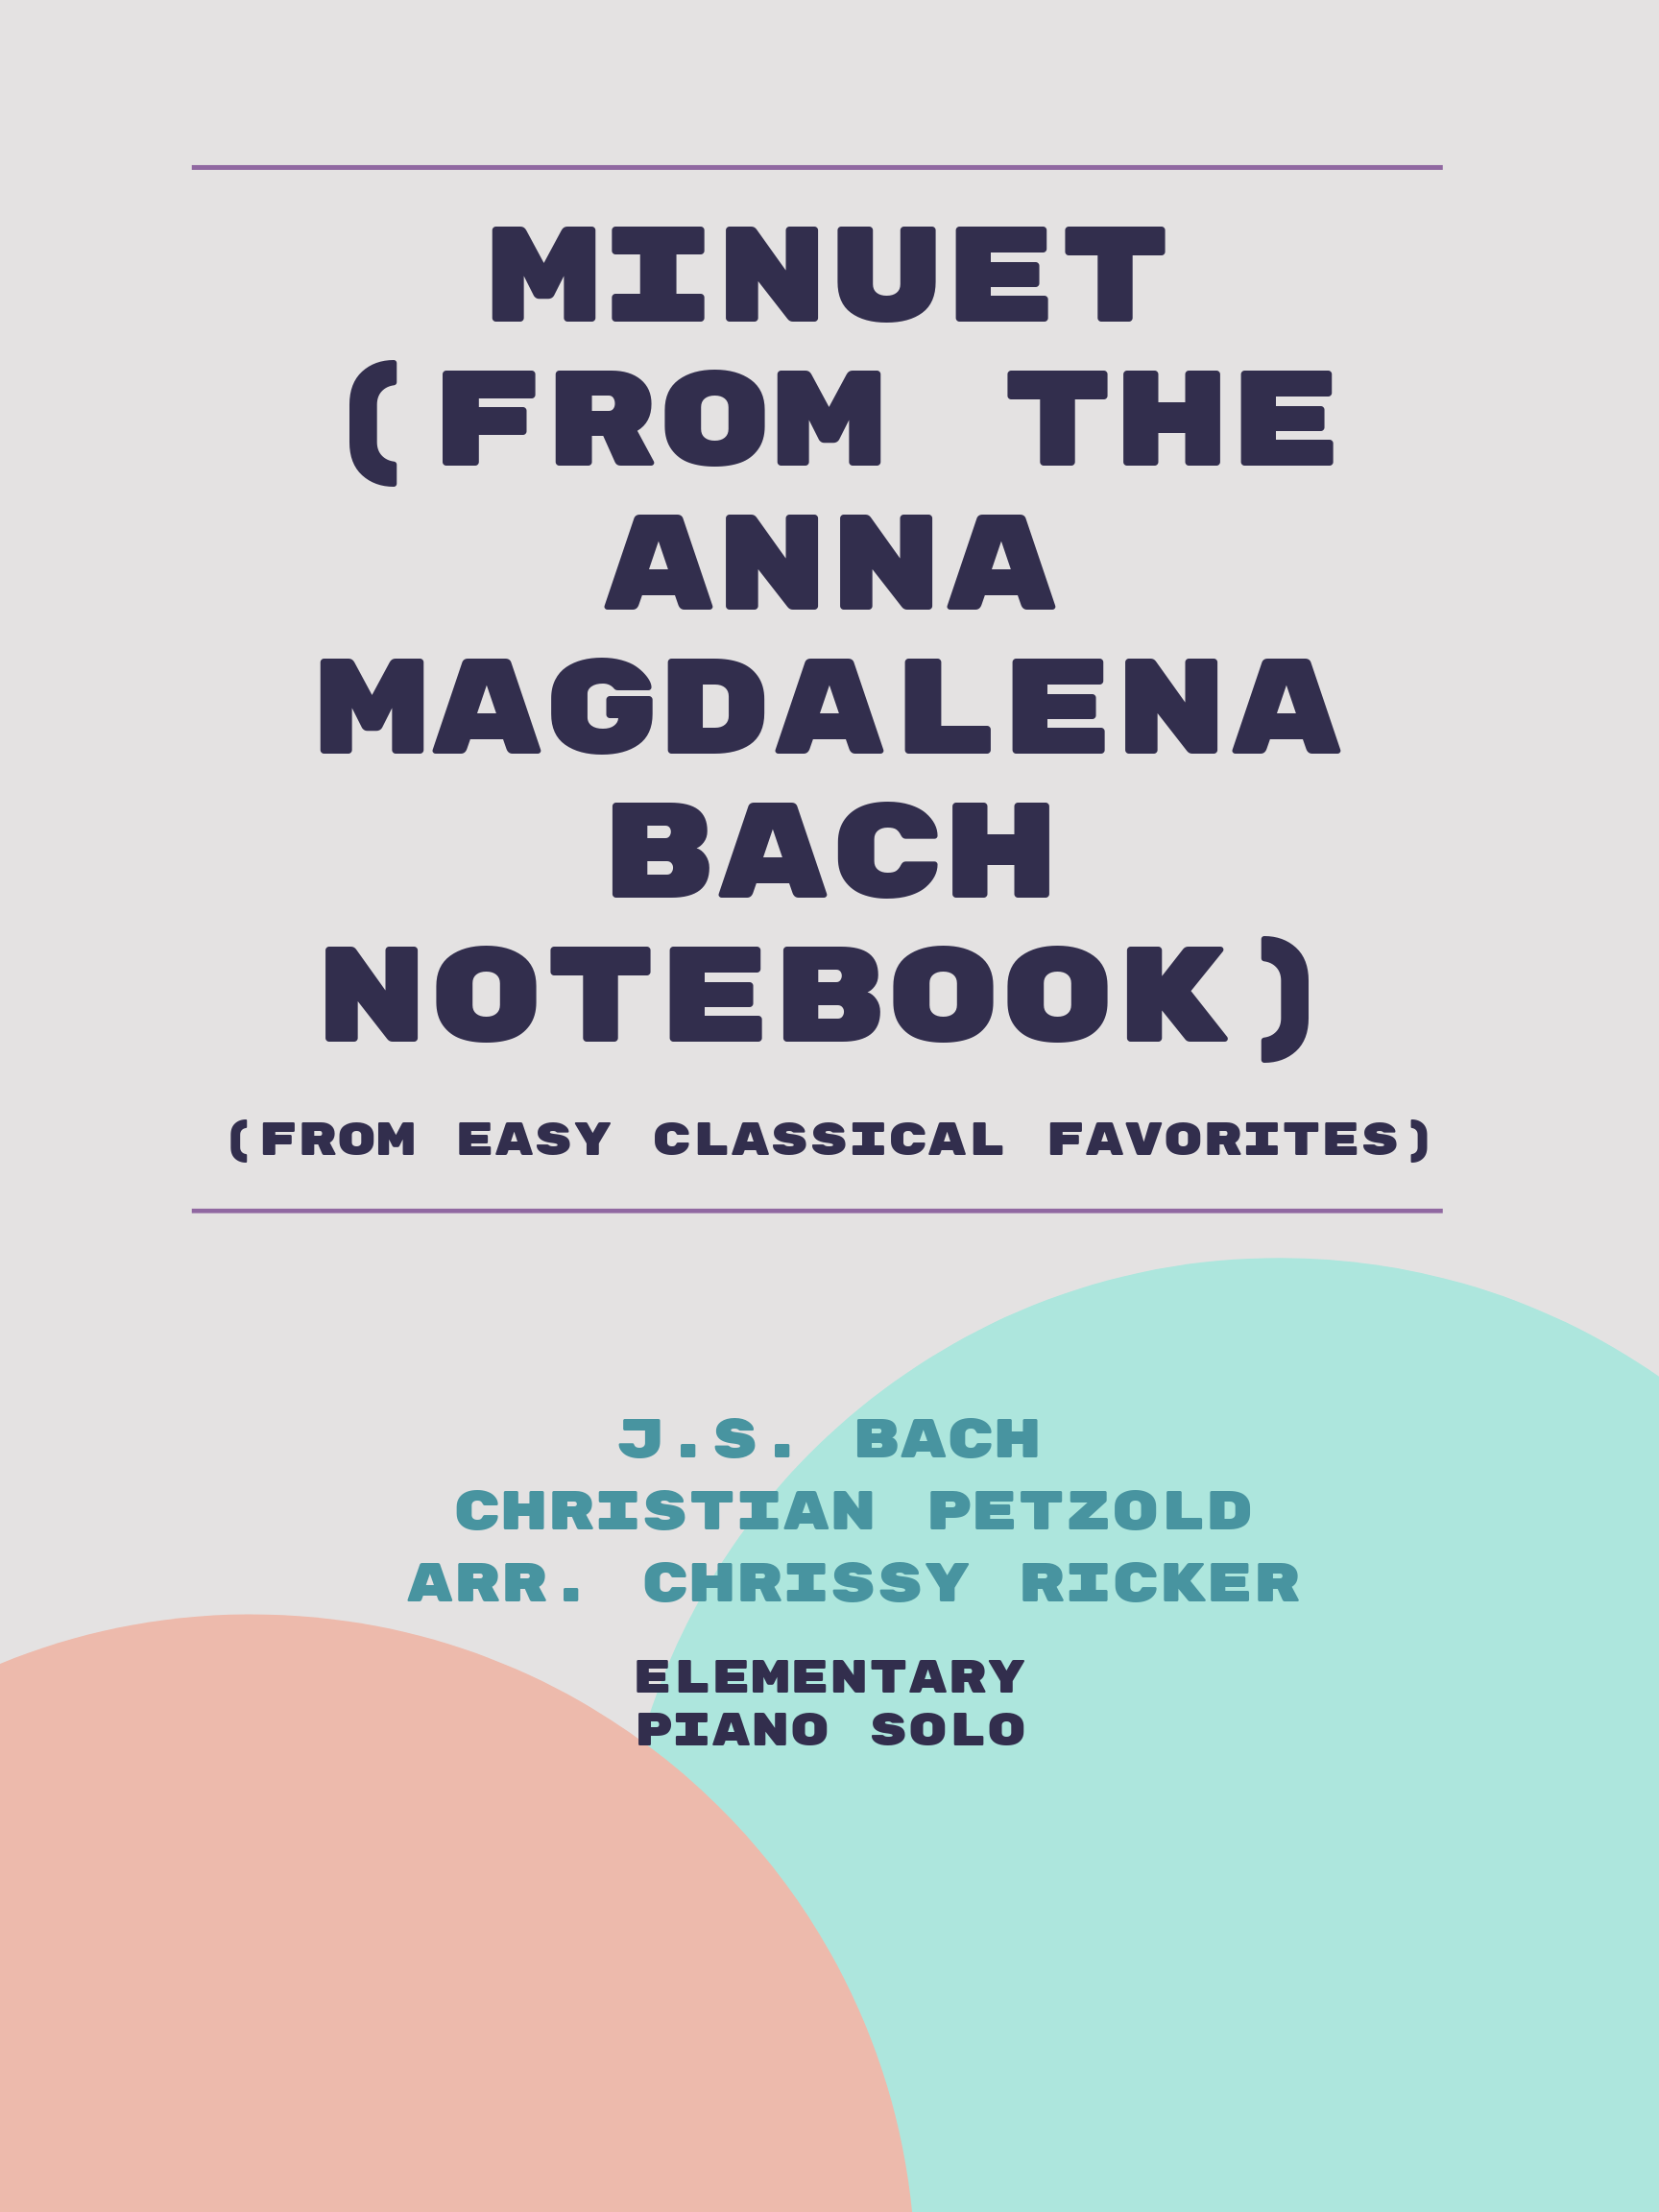 Minuet (from the Anna Magdalena Bach notebook) by Christian Petzold, J.S. Bach